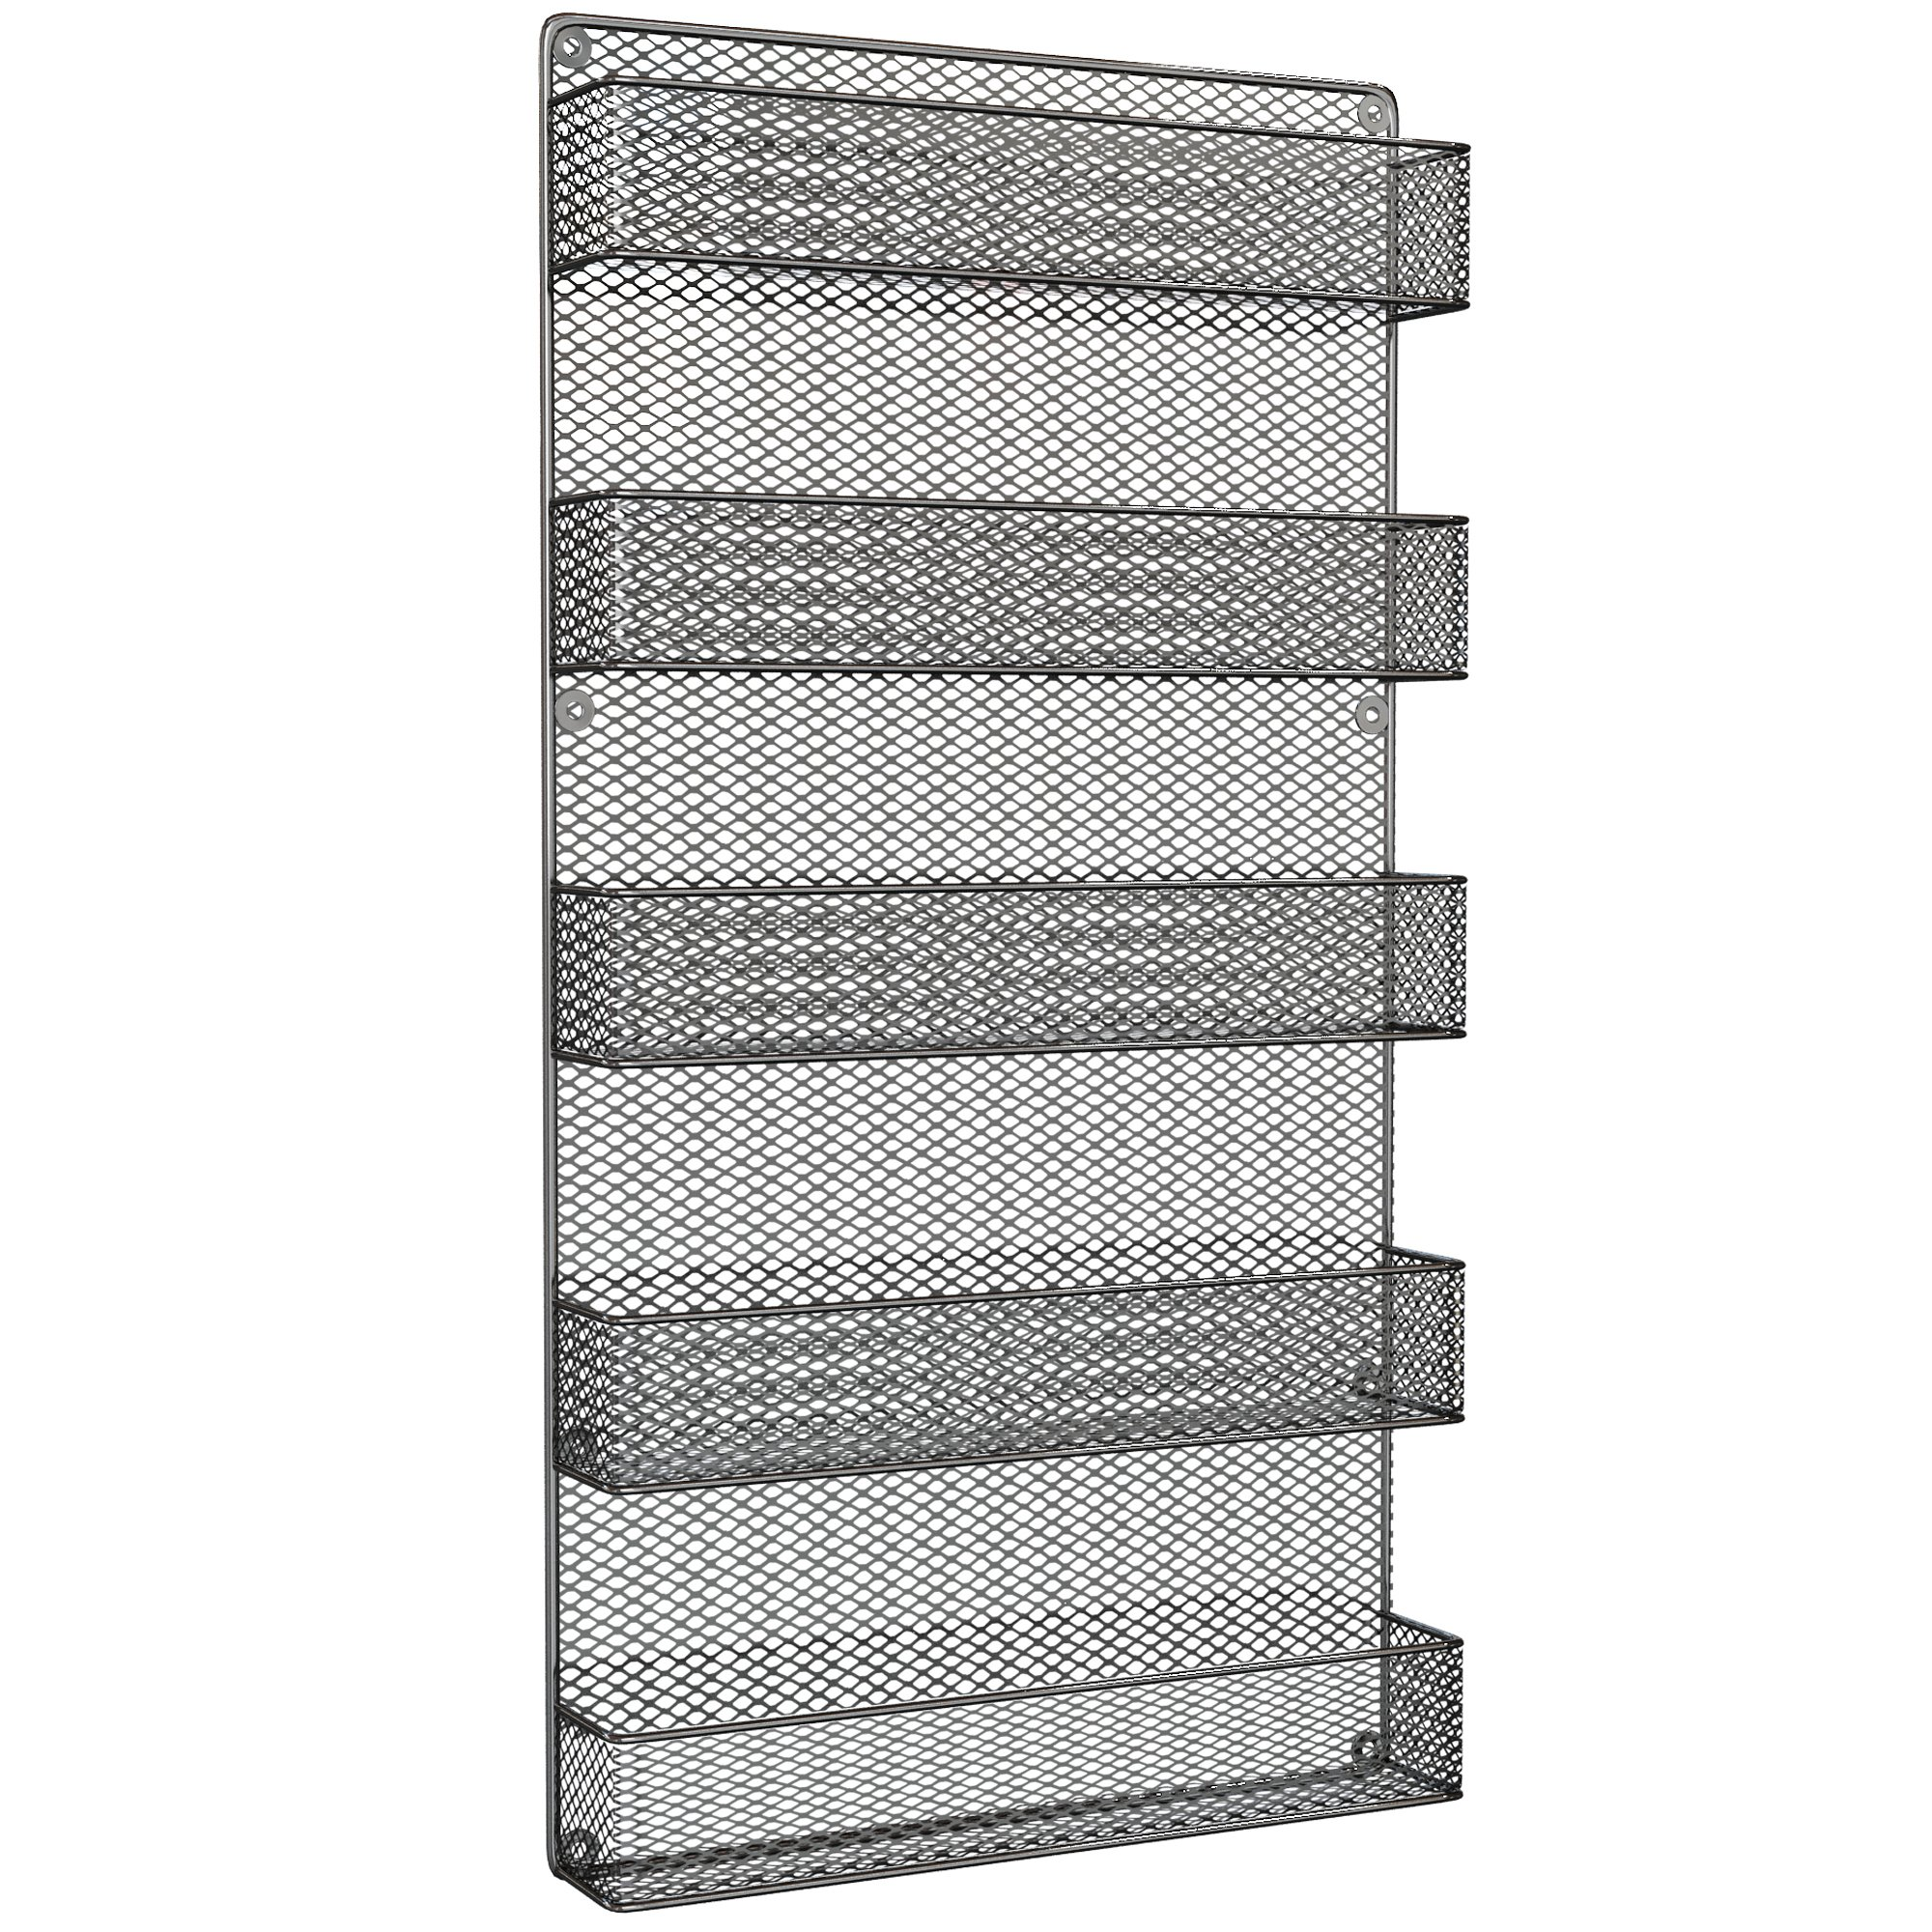 Spice Racks Organizer - Country Rustic Wire Style - Great Storage for Pantry, Cabinet and Kitchen - Wall Mounted 5 Tier Shelves by Spice Racks